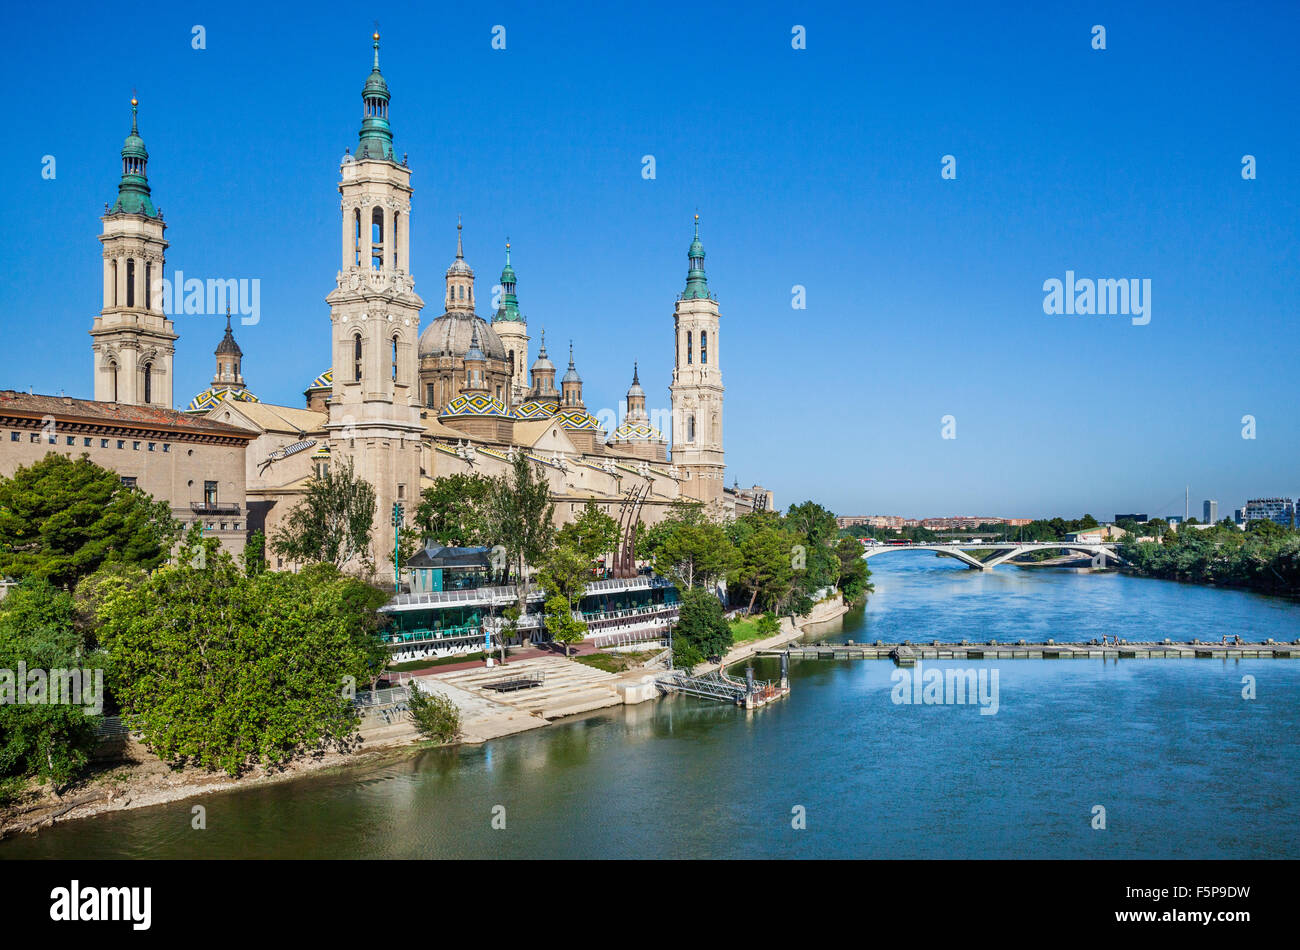 Spain, Aragon, Zaragoza, view of the Baroque style Basilica-Cathedral of Our Lady of the Pillar and her distinctive - Stock Image